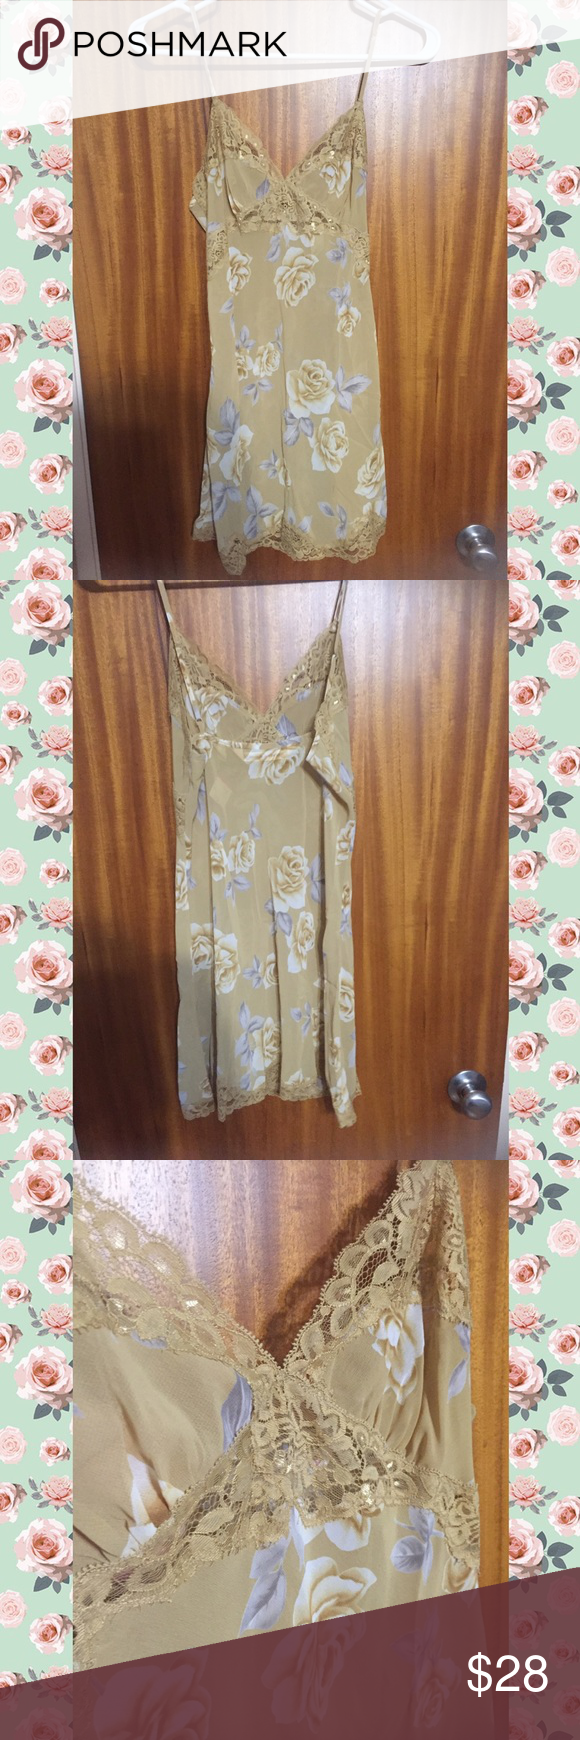 Brand New Victoria's Secret PJs! Cream nightgown with adorable light blue and tan floral pattern. Perfect condition. Unworn. New with tags! Victoria's Secret Intimates & Sleepwear Pajamas